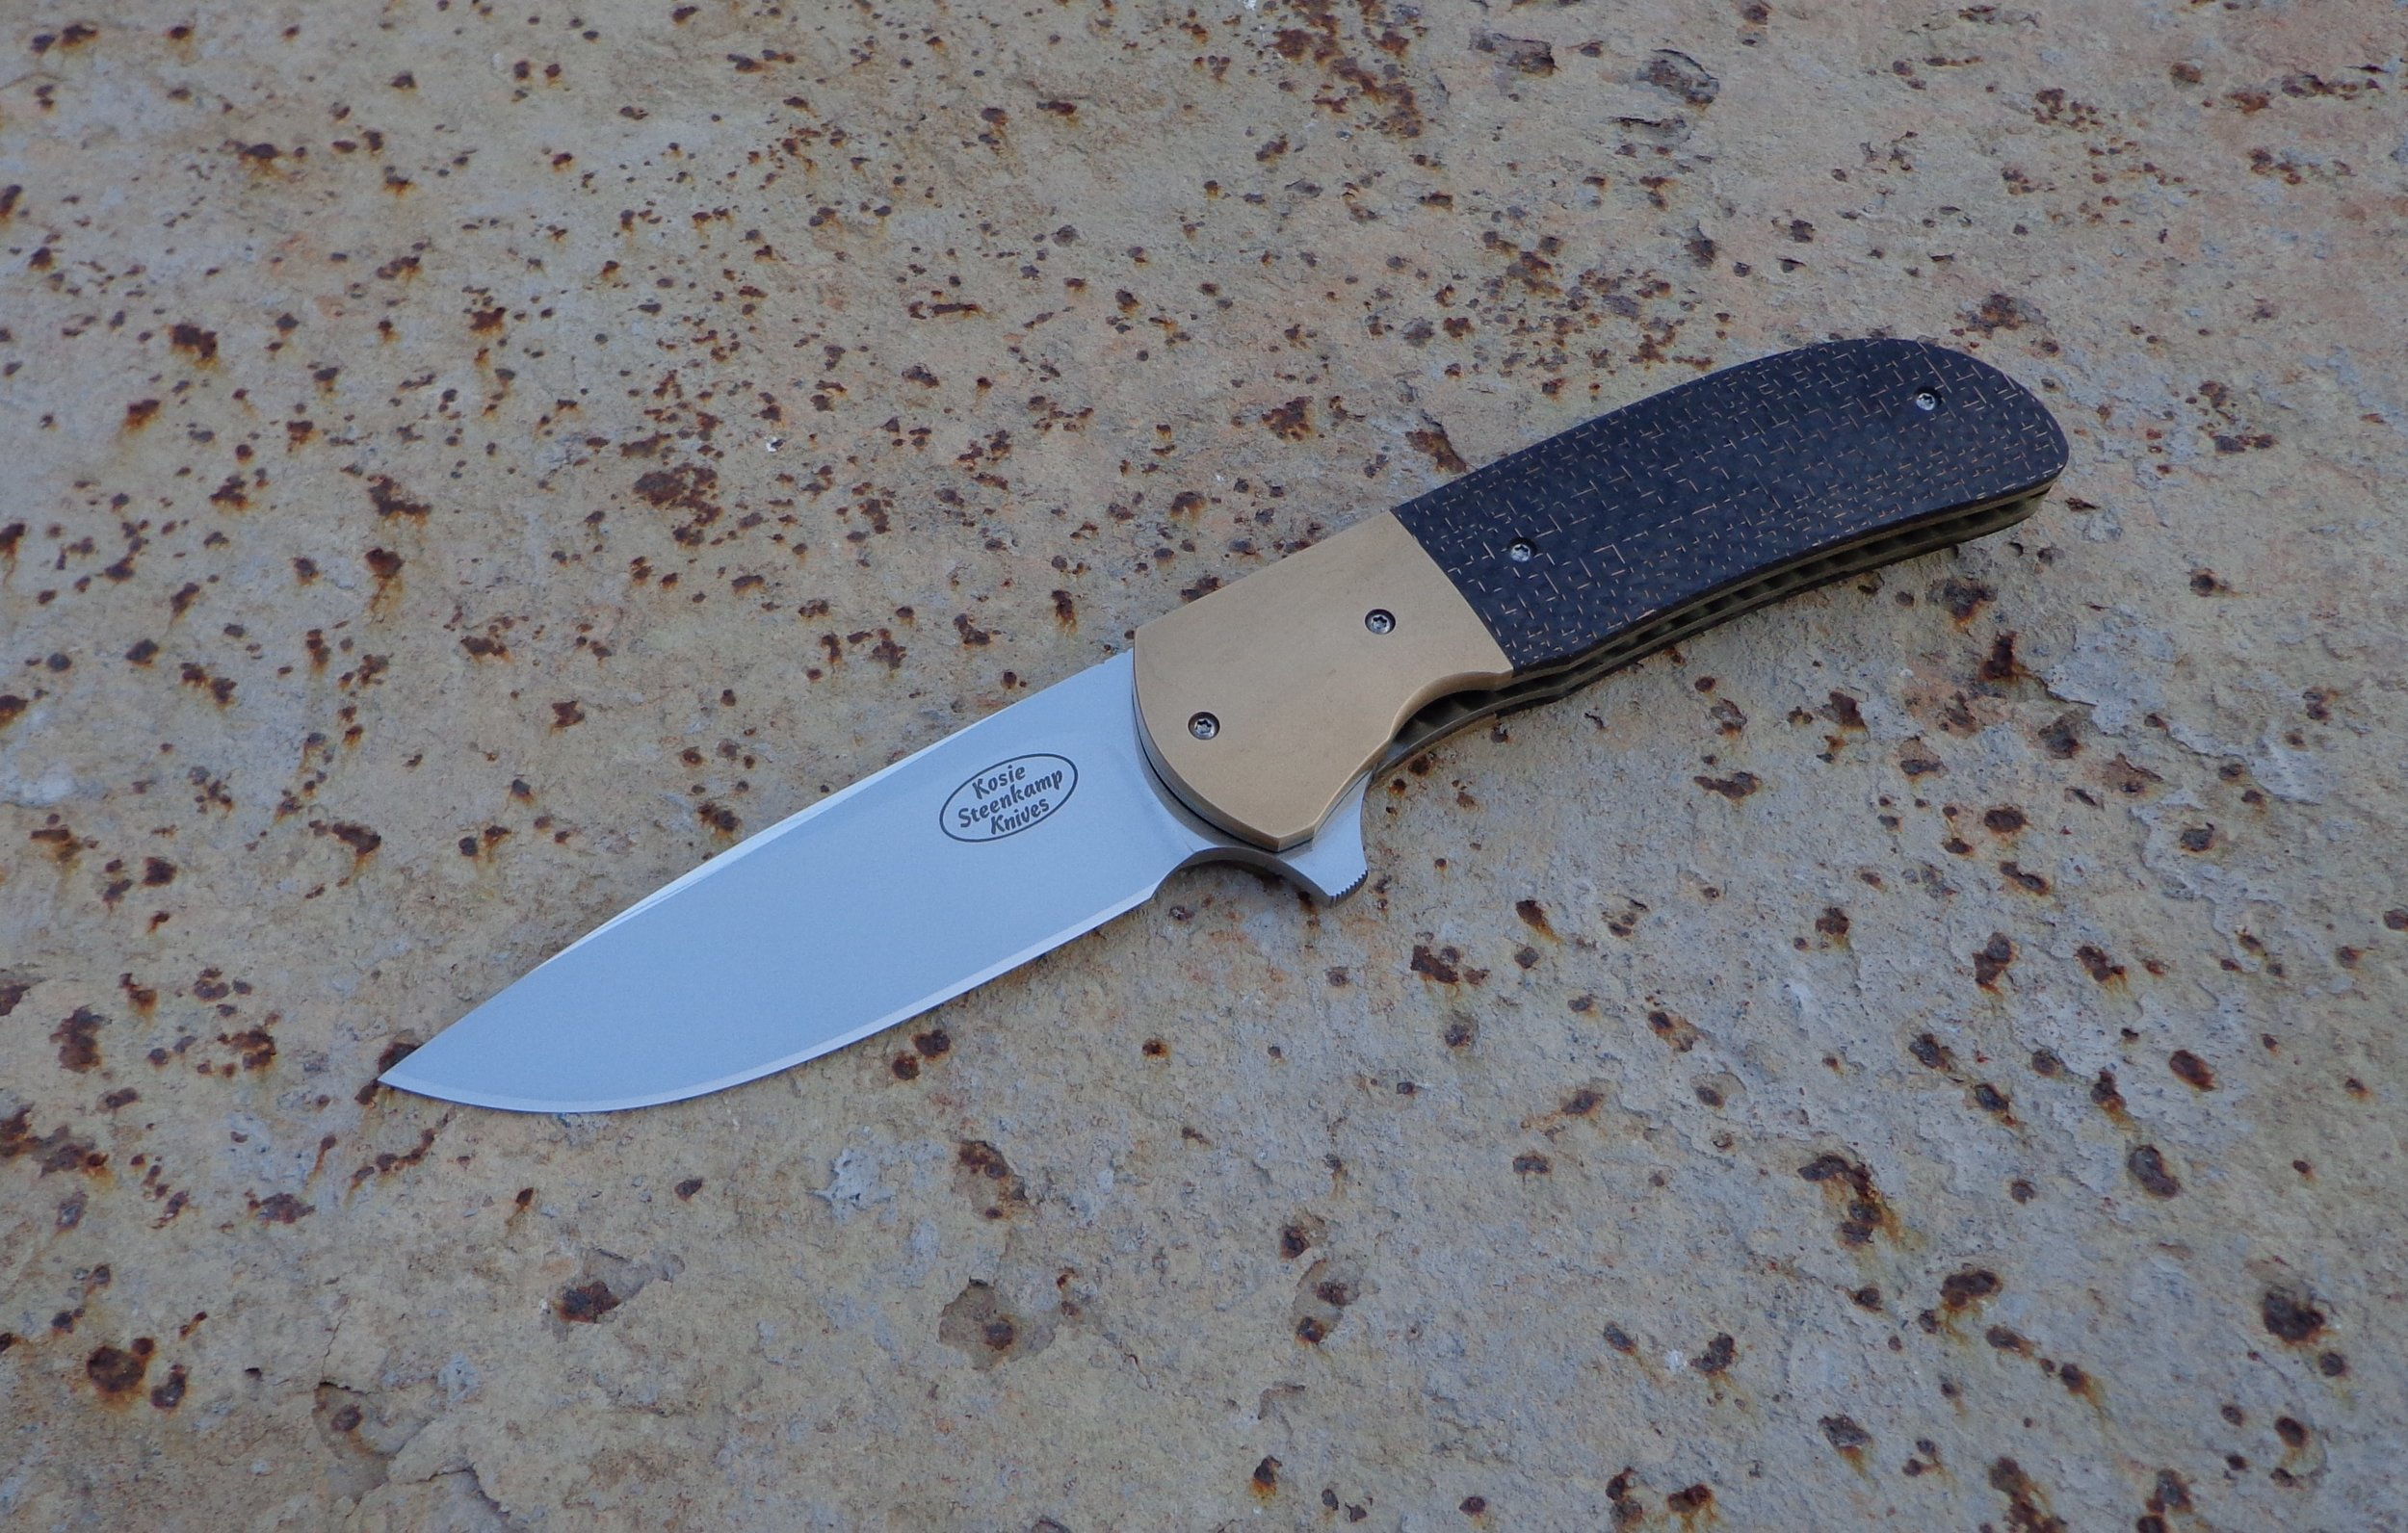 Knife: Piuma Flipper. Blade: Böhler N690 Stainless Steel. Bolsters: Bronze. Handle scales: LS Carbon Fiber. Liners and pocket clip: Titanium, anodized golden.